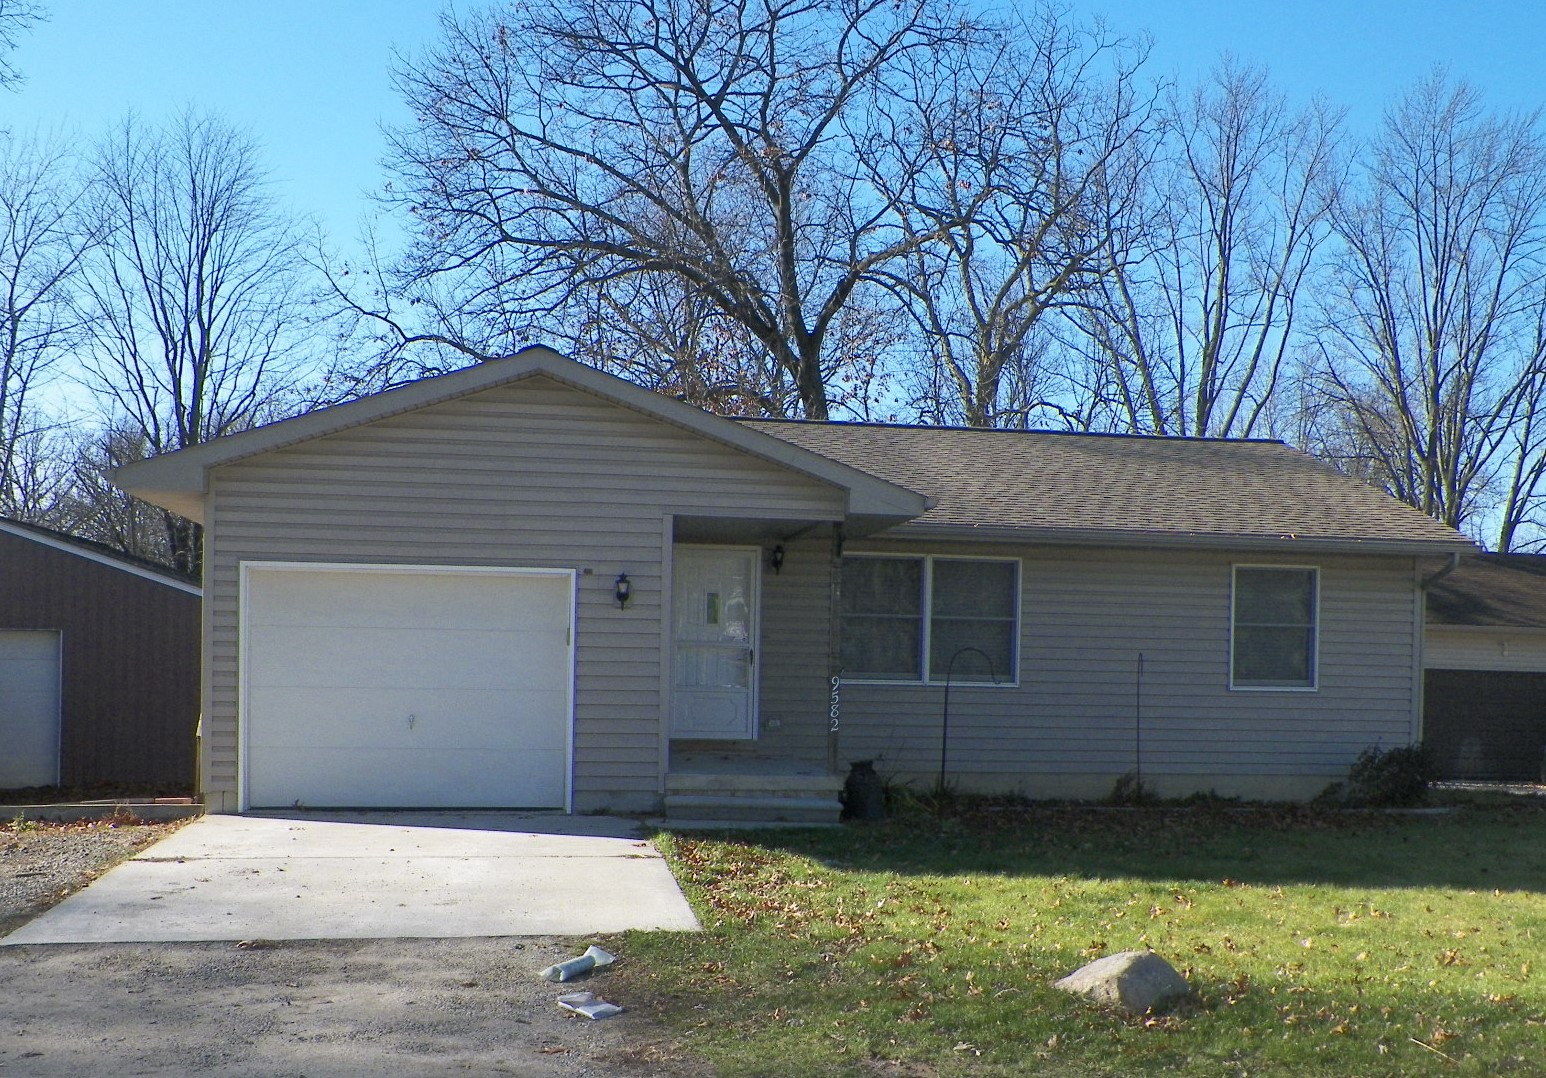 Palmer- Hamburg - $142,000   DOM 31 / Sold for 98% of asking price / 8 Showings